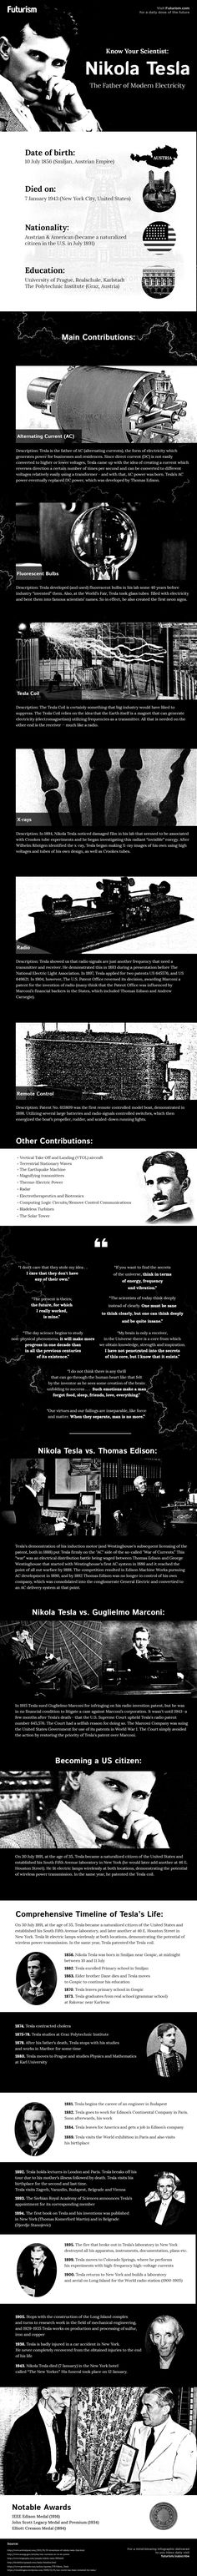 Nikola Tesla - a truly amazing man. Sadly misunderstood and his good nature abused by many. Far ahead of his time. :)